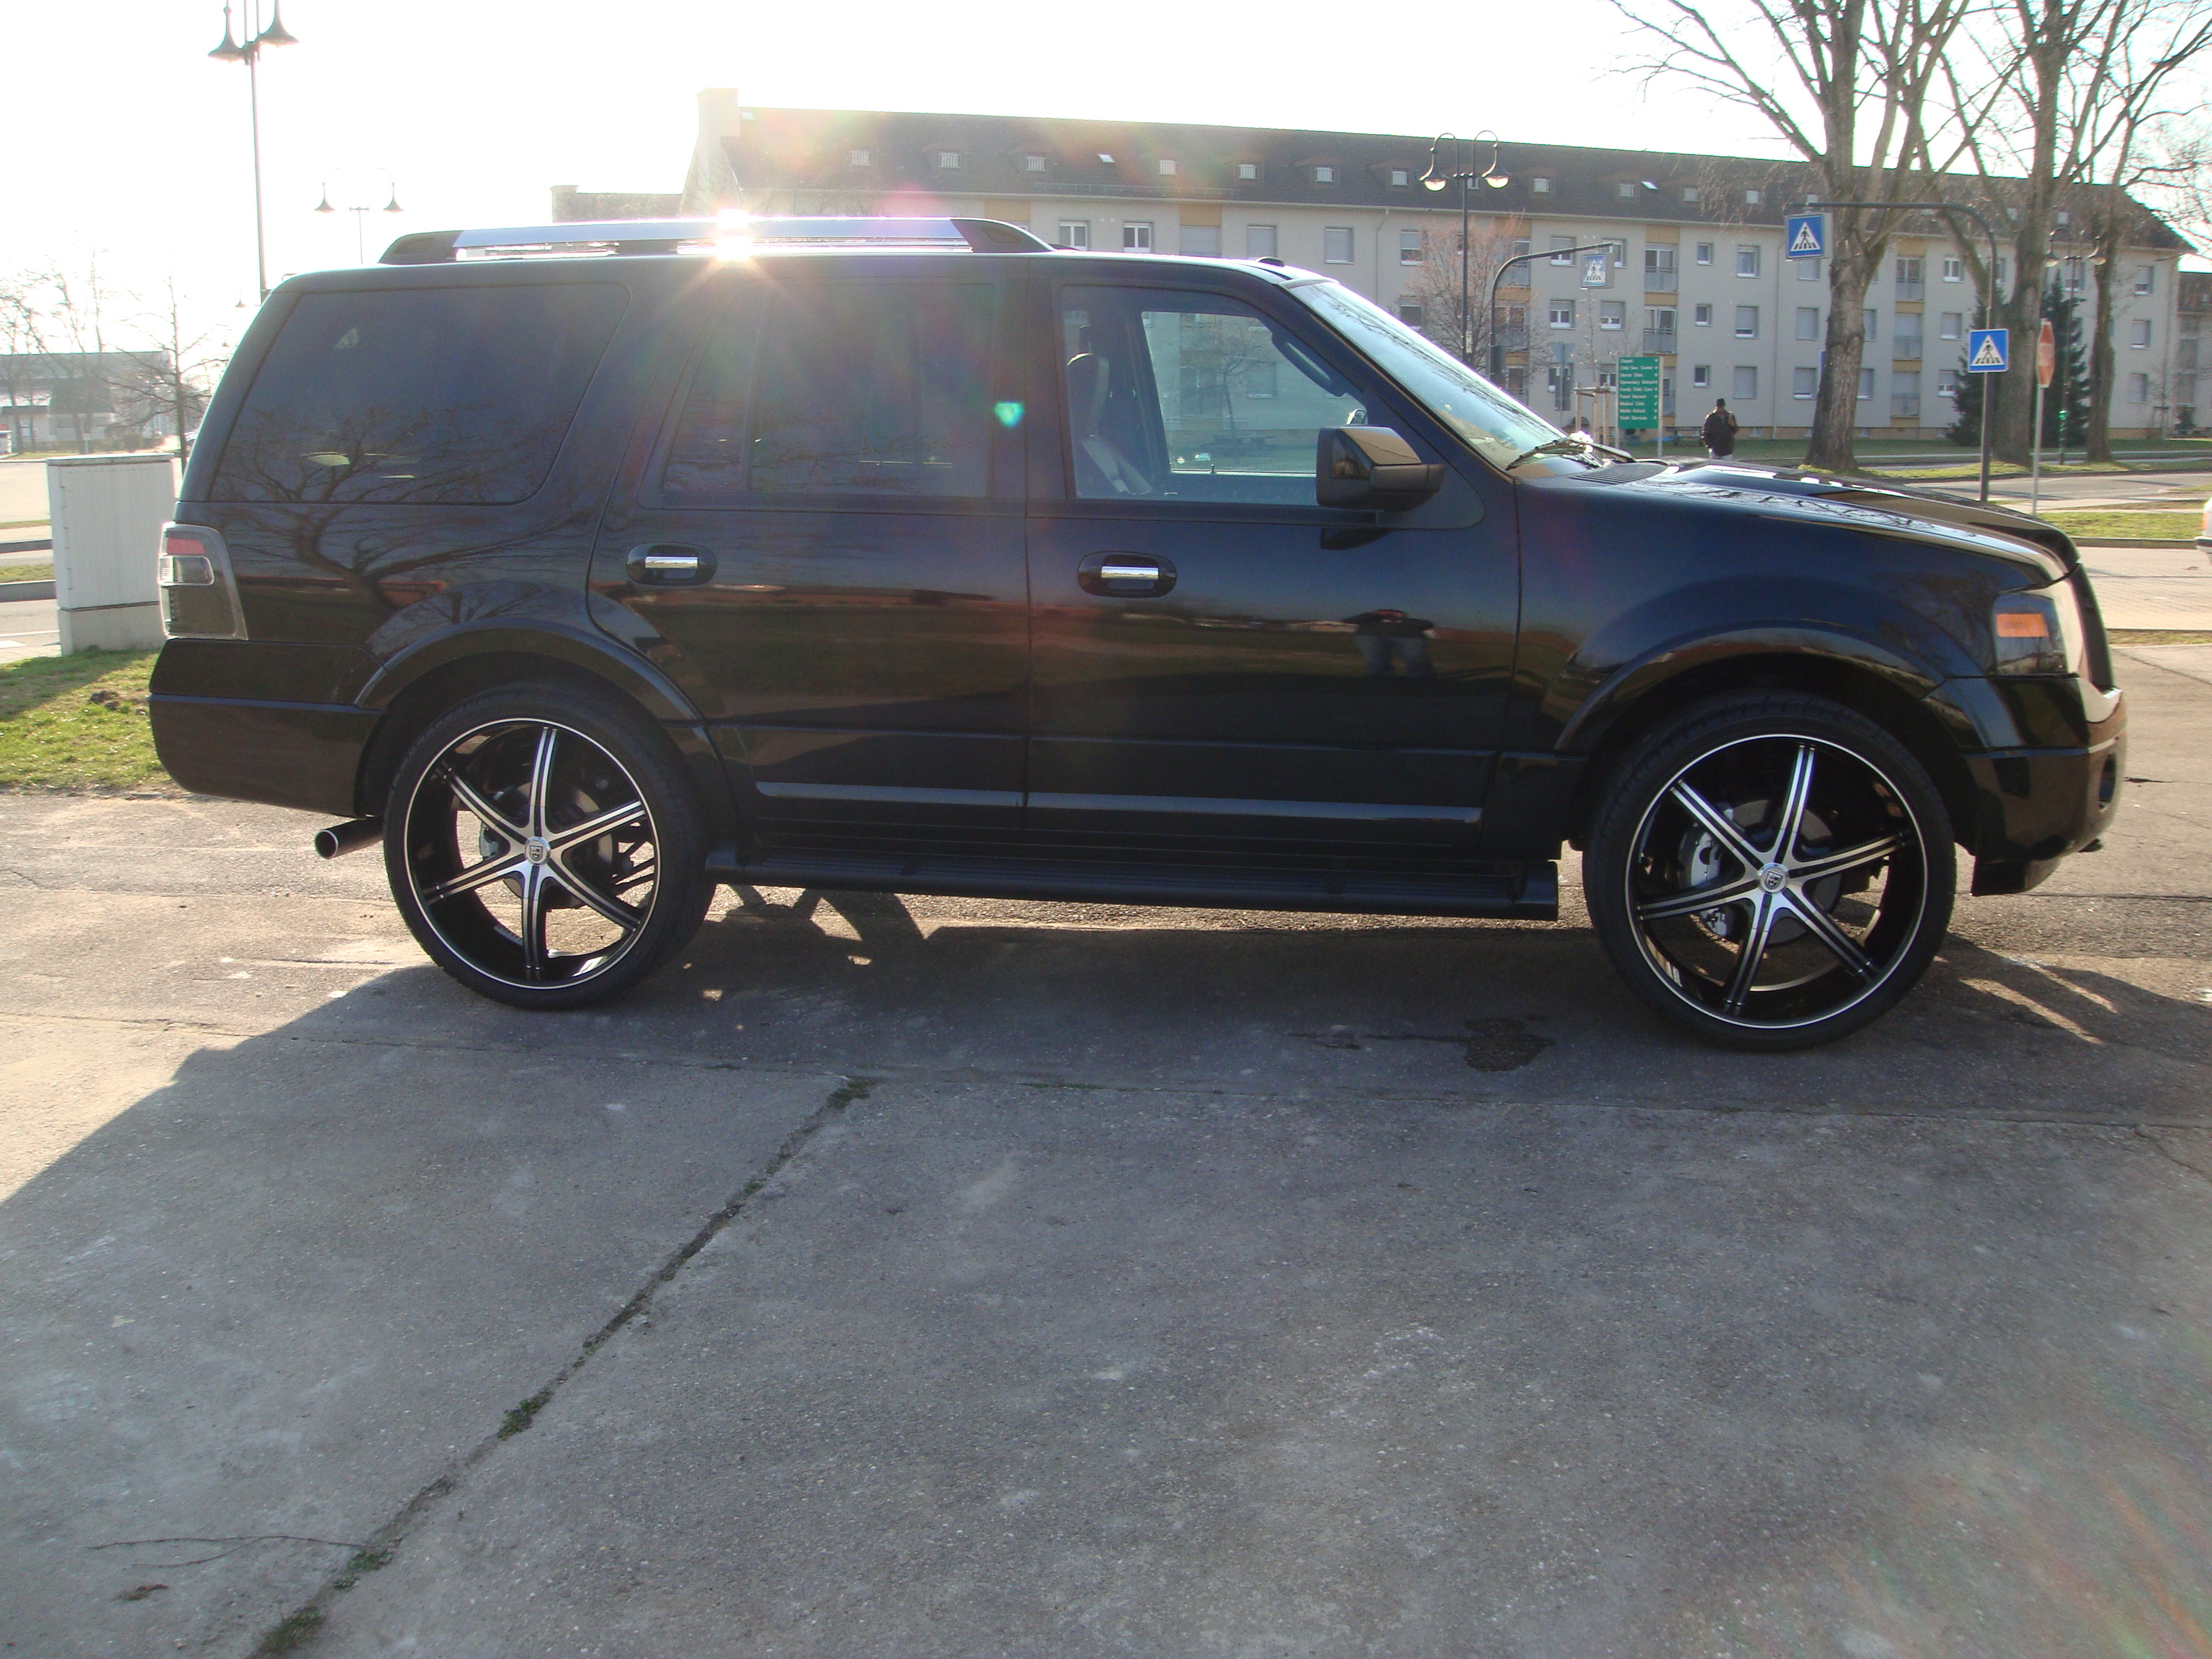 Youngdetroit 2009 ford expedition 33044910001 original